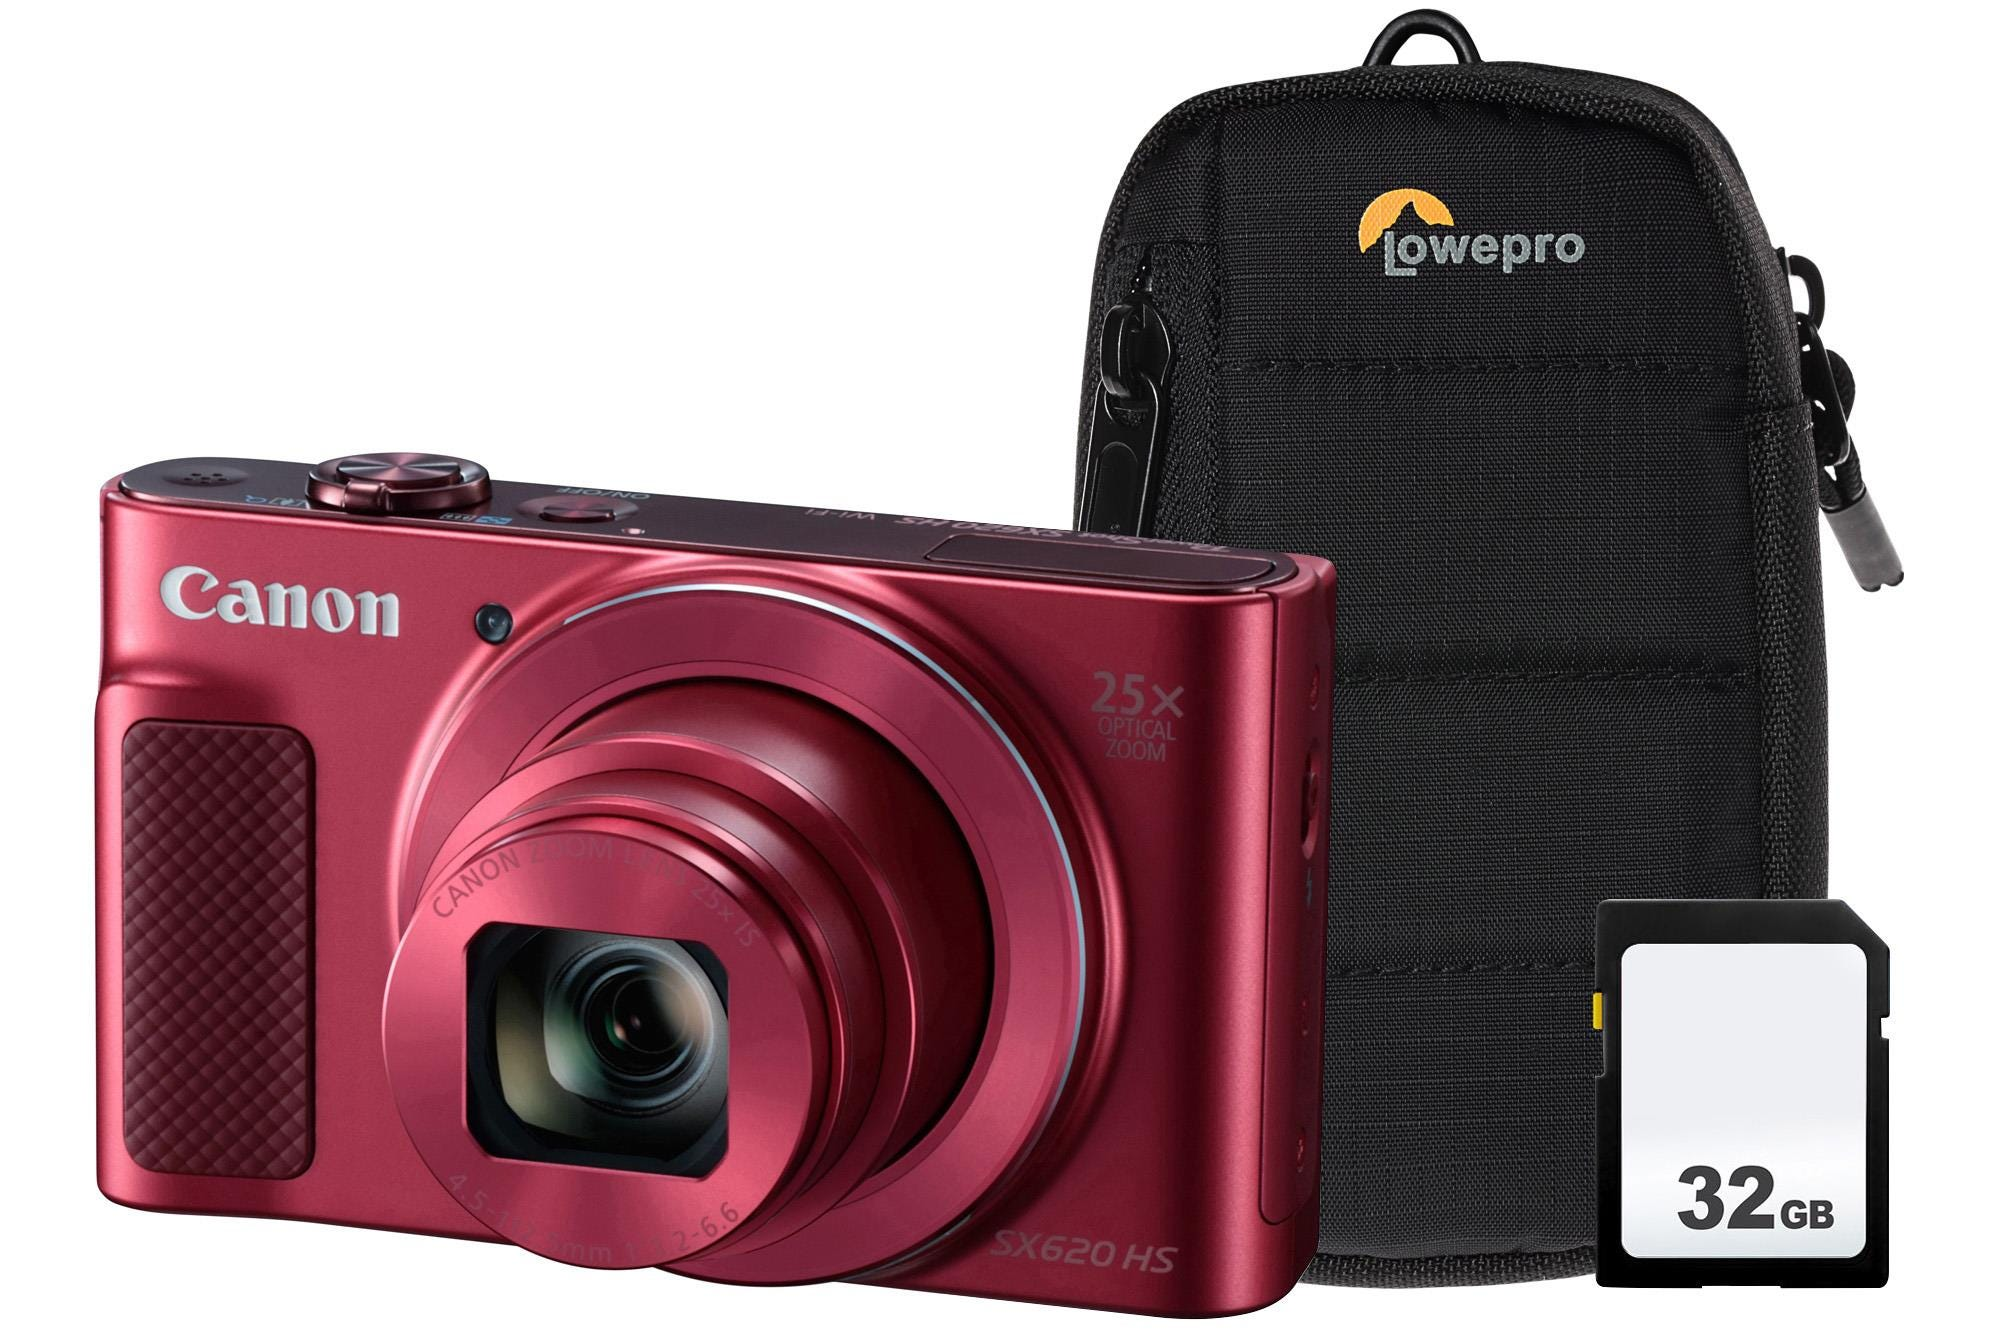 Canon PowerShot SX620 HS 21.1MP 25x Zoom Compact Camera, 32GB SDHC Card    Case - Red